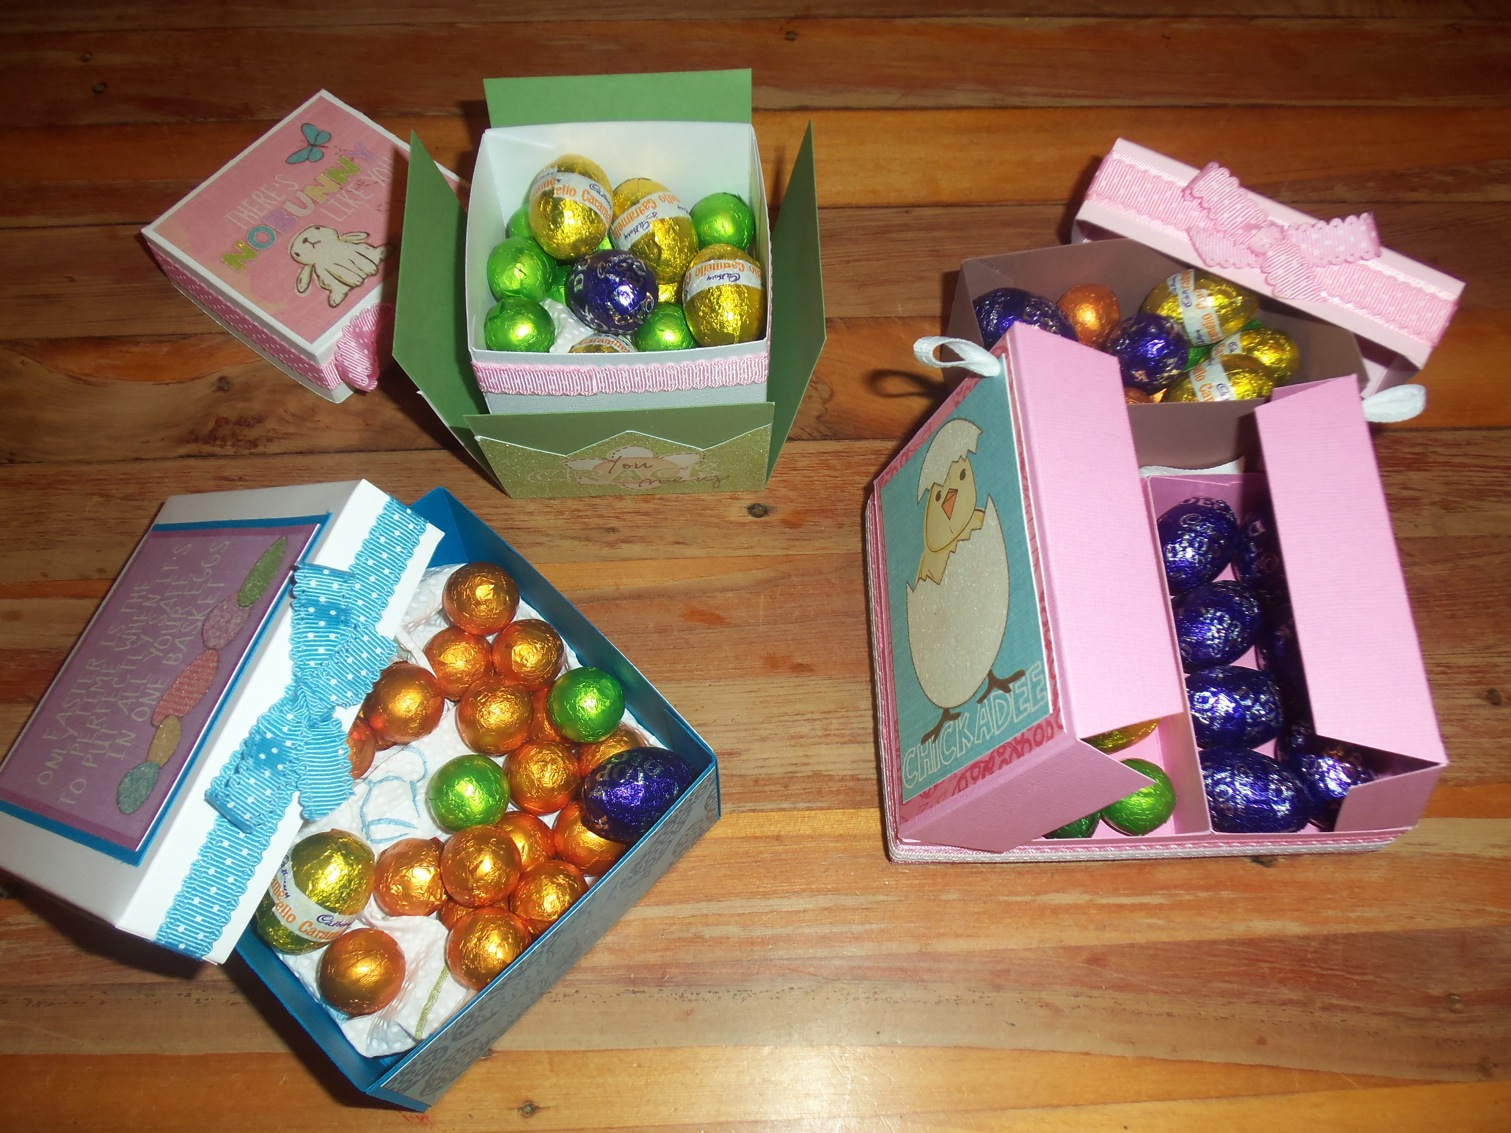 A day in the life of jonnece easter gifts teachers treats easter gifts teachers treats negle Choice Image